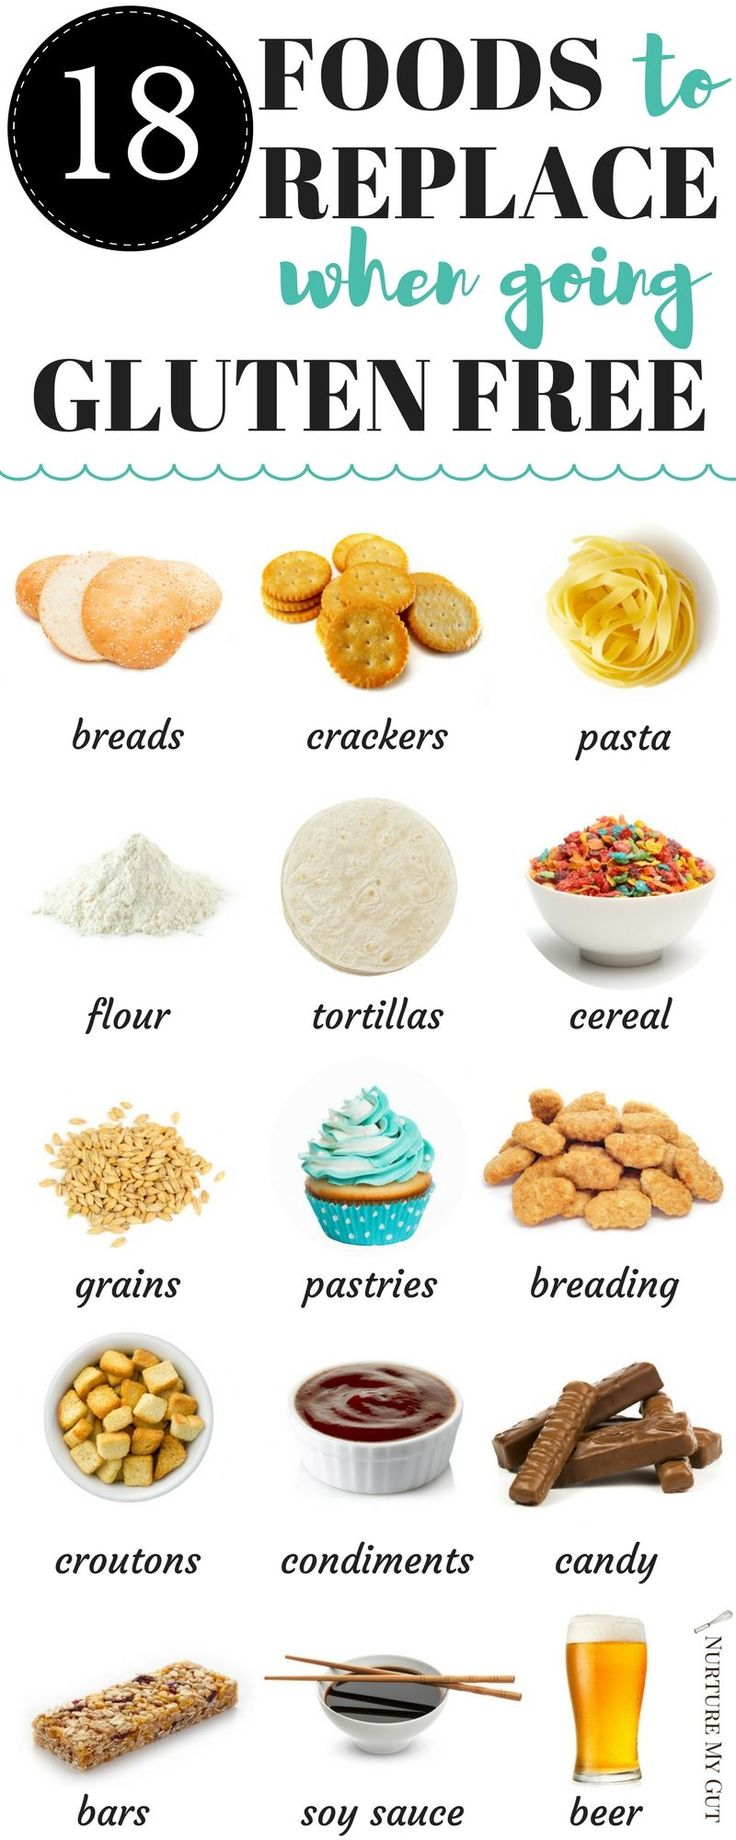 Ultimate Pantry Clean-out Guide: 18 Foods to Replace when going Gluten Free.  Learn how to identify gluten, read labels and keep your family safe!  Gluten free guide. Step by step gluten free pantry cleanout.